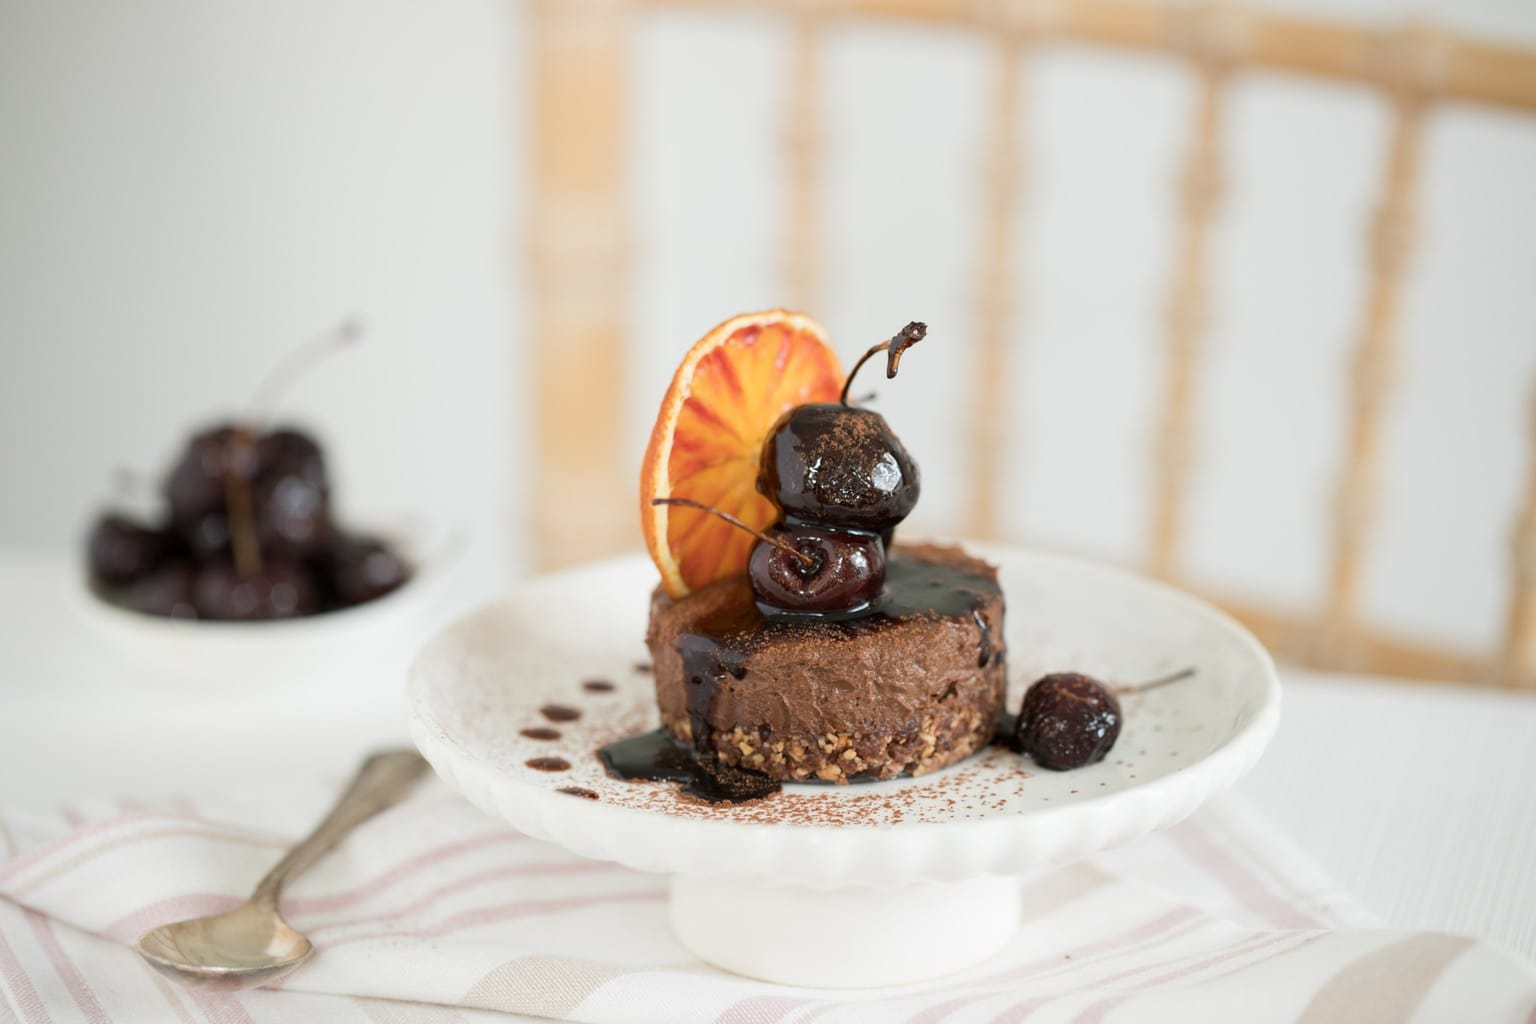 Double Chocolate, Roasted Hazelnut & Blood Orange Torte with a Balsamic Cherry Syrup